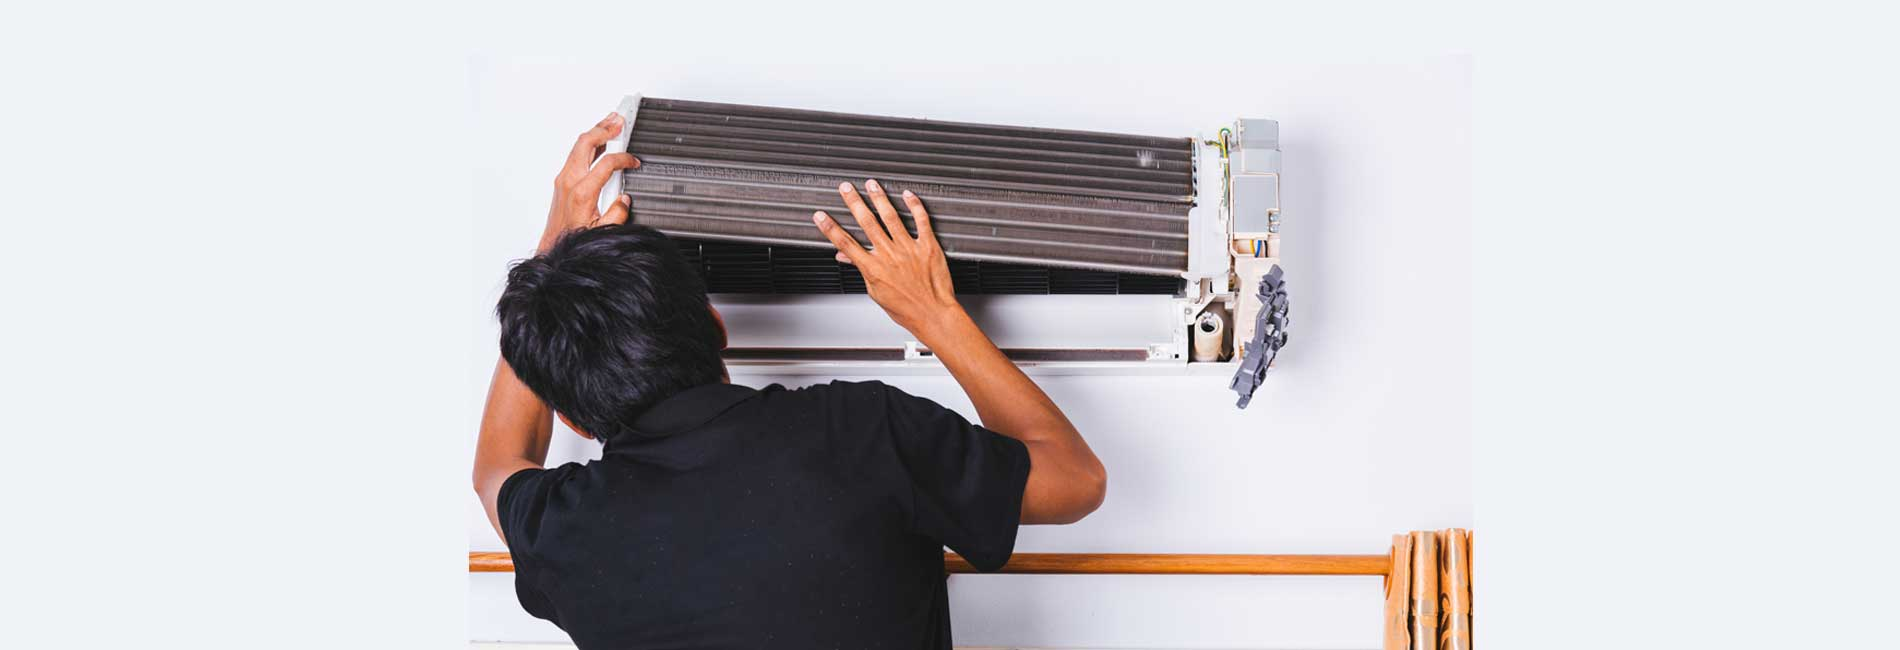 Daikin Split AC Uninstallation in R.A Puram